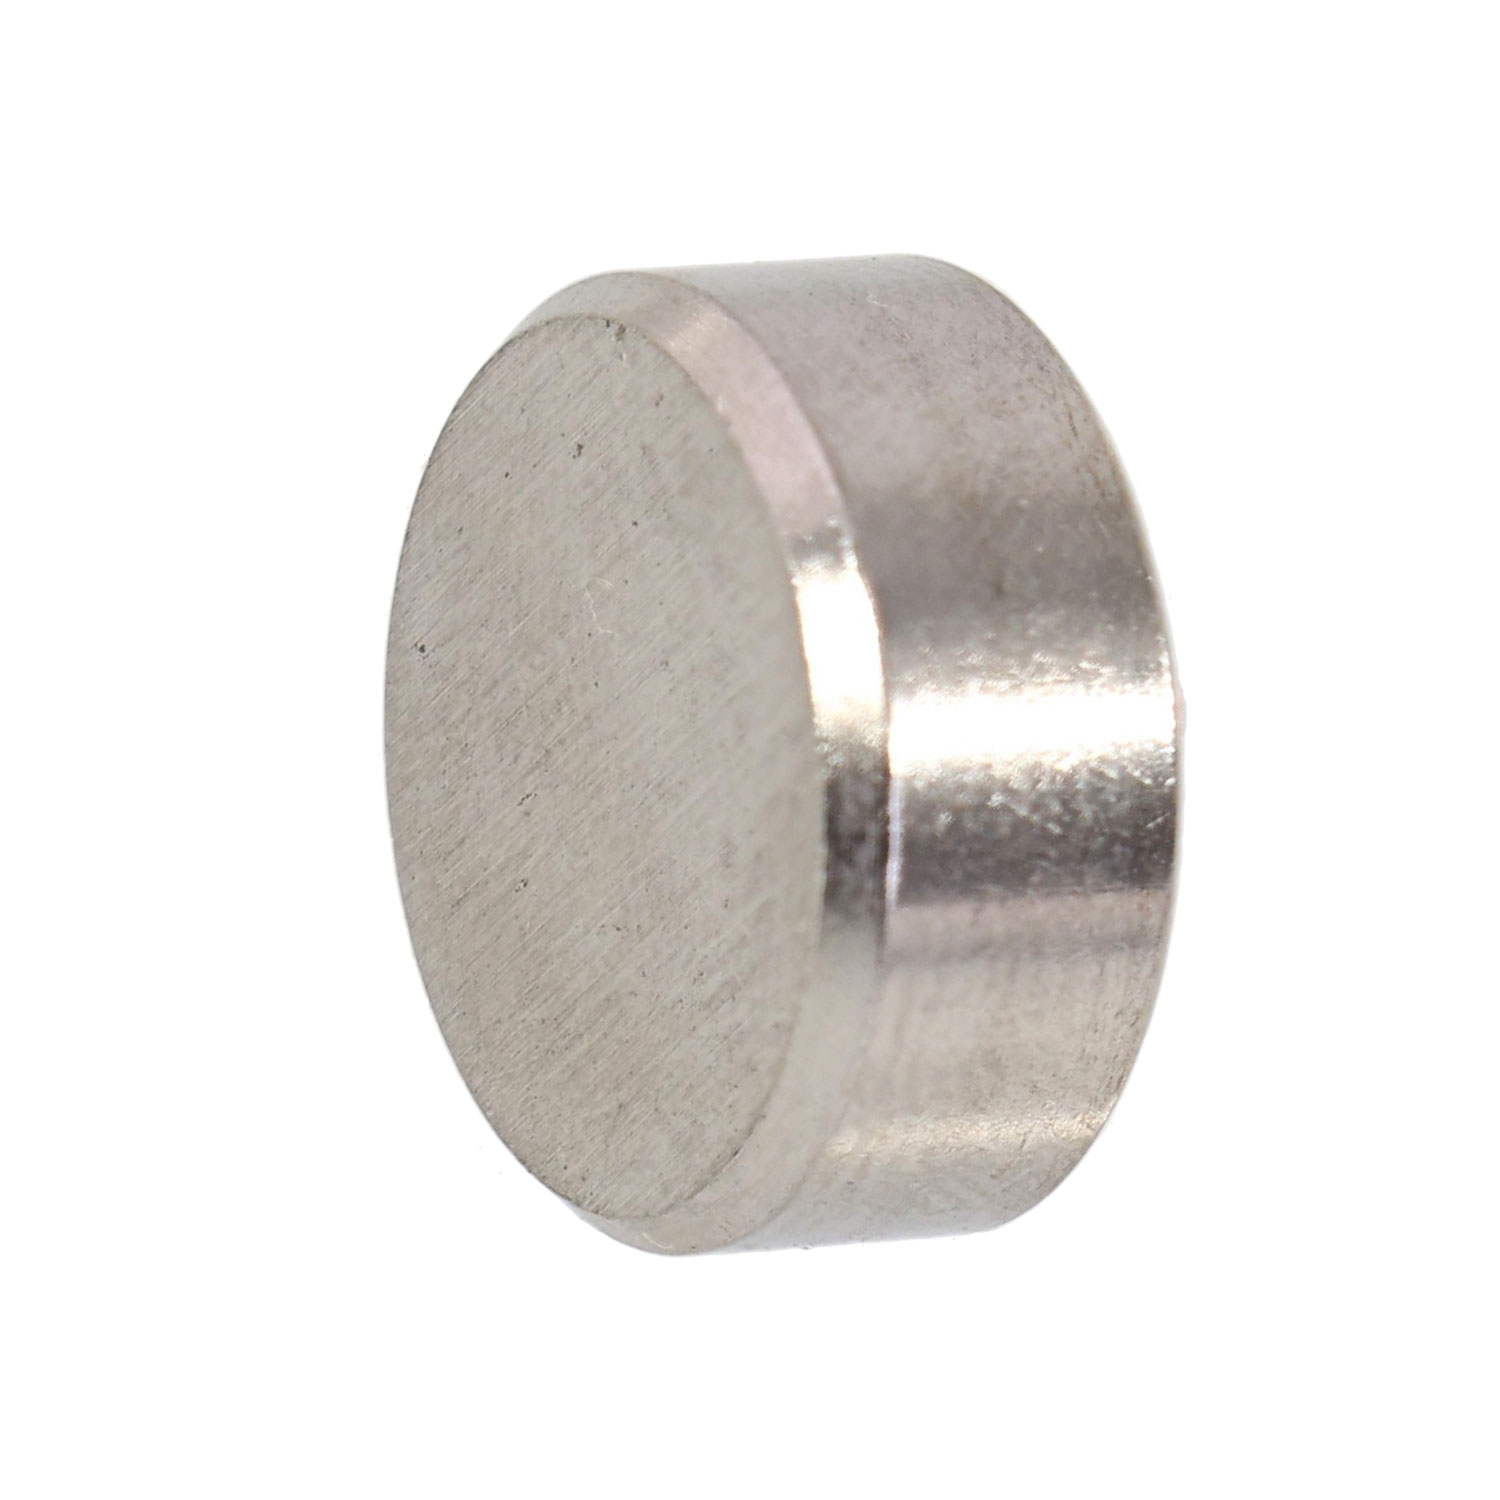 Quot type stainless steel end cap to use as nut